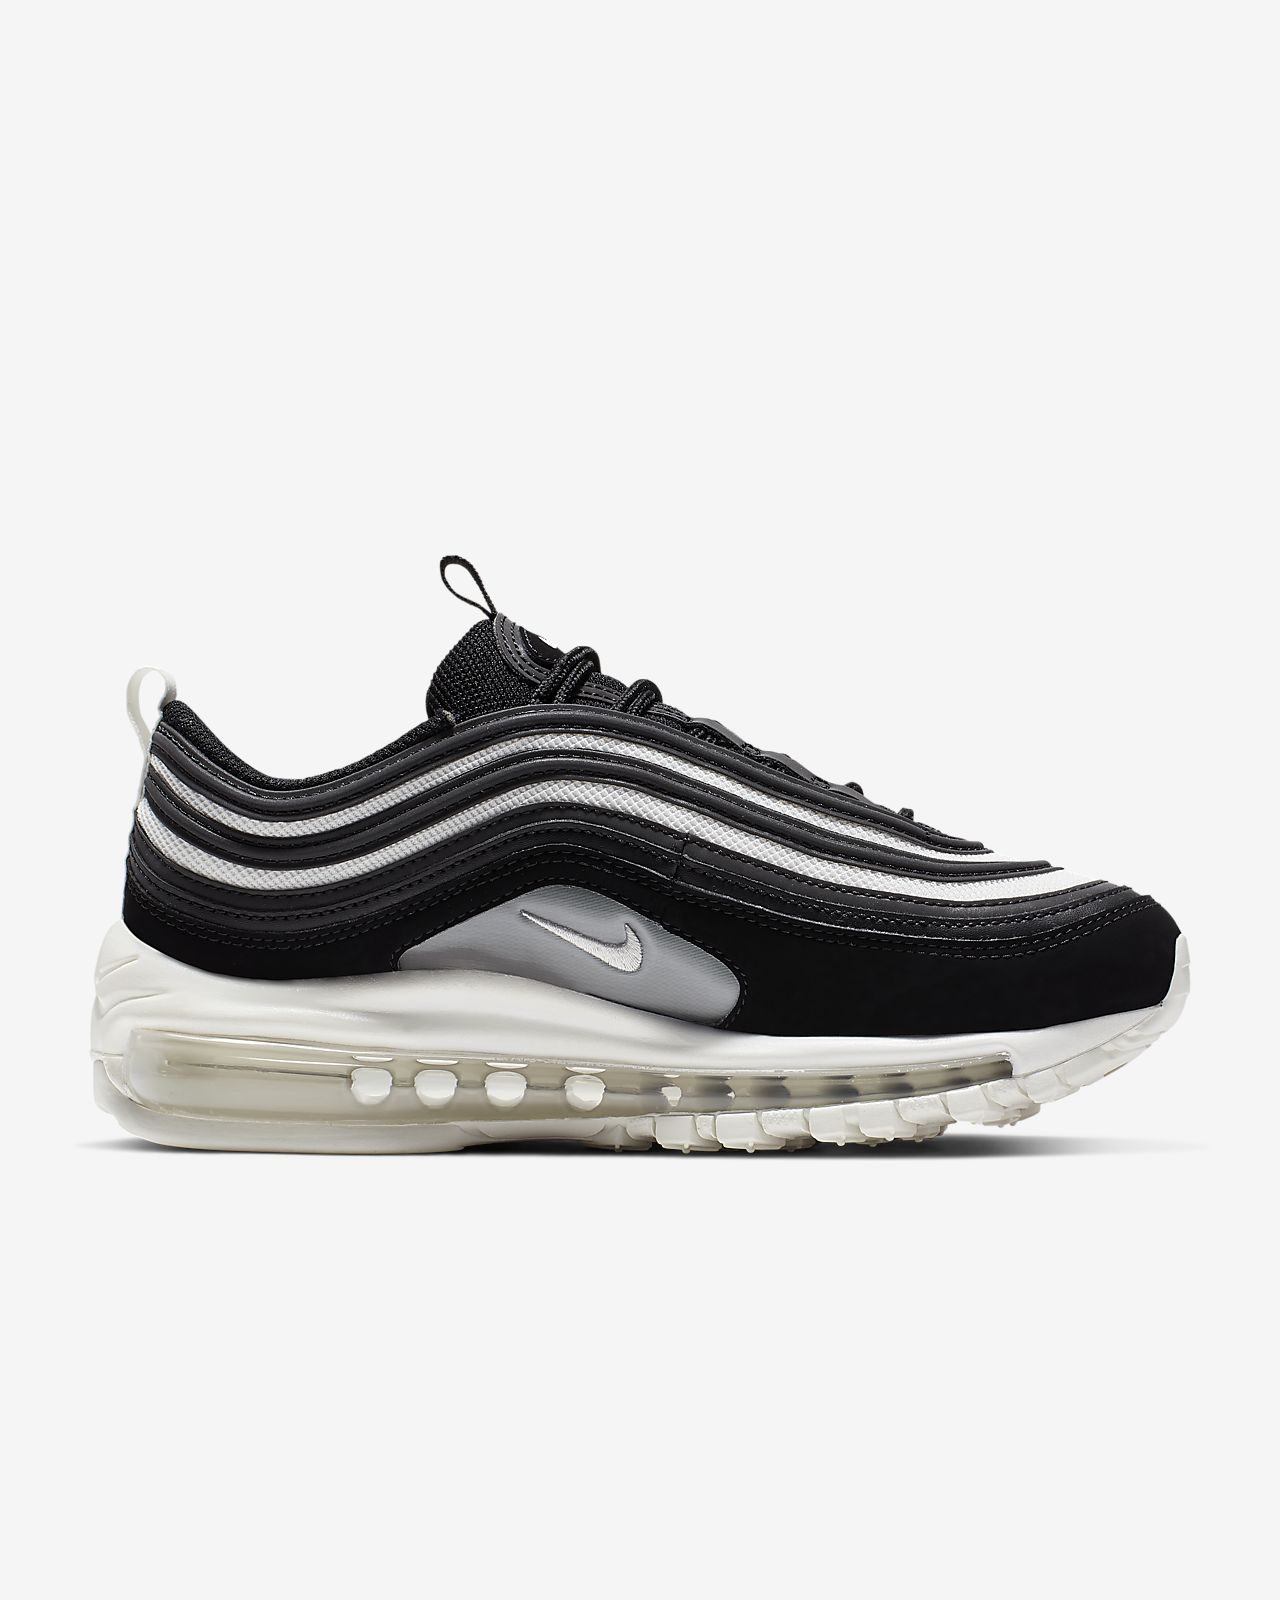 e58a8b8d34 Nike Air Max 97 Women's Shoe. Nike.com GB